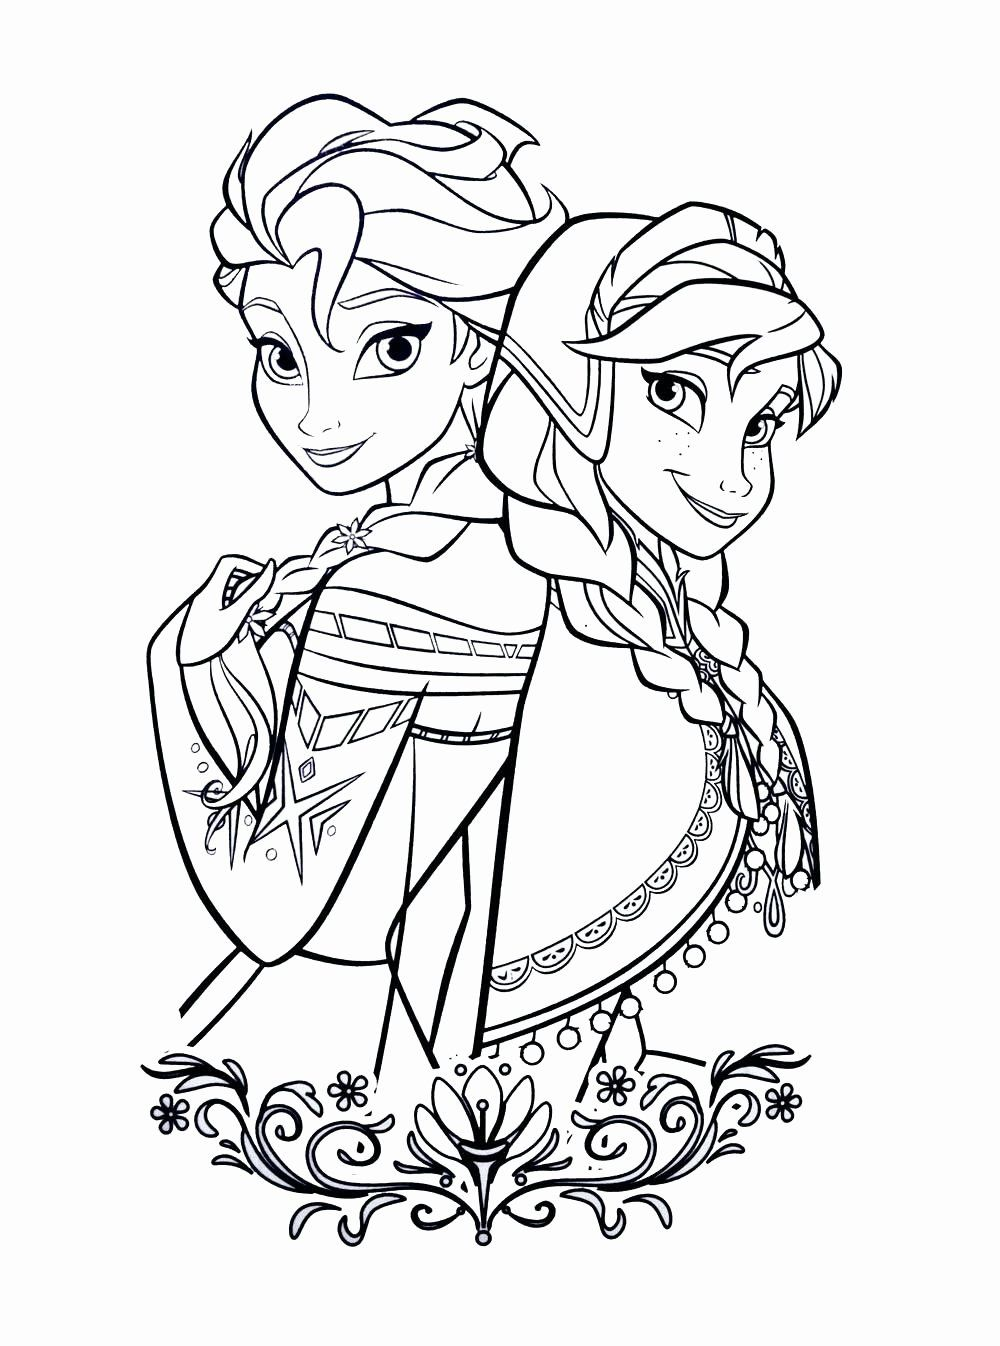 Free Frozen Coloring Sheets Luxury Elsa Frozen Coloring Pages Free Codeadventures Disney Princess Coloring Pages Elsa Coloring Pages Disney Coloring Pages